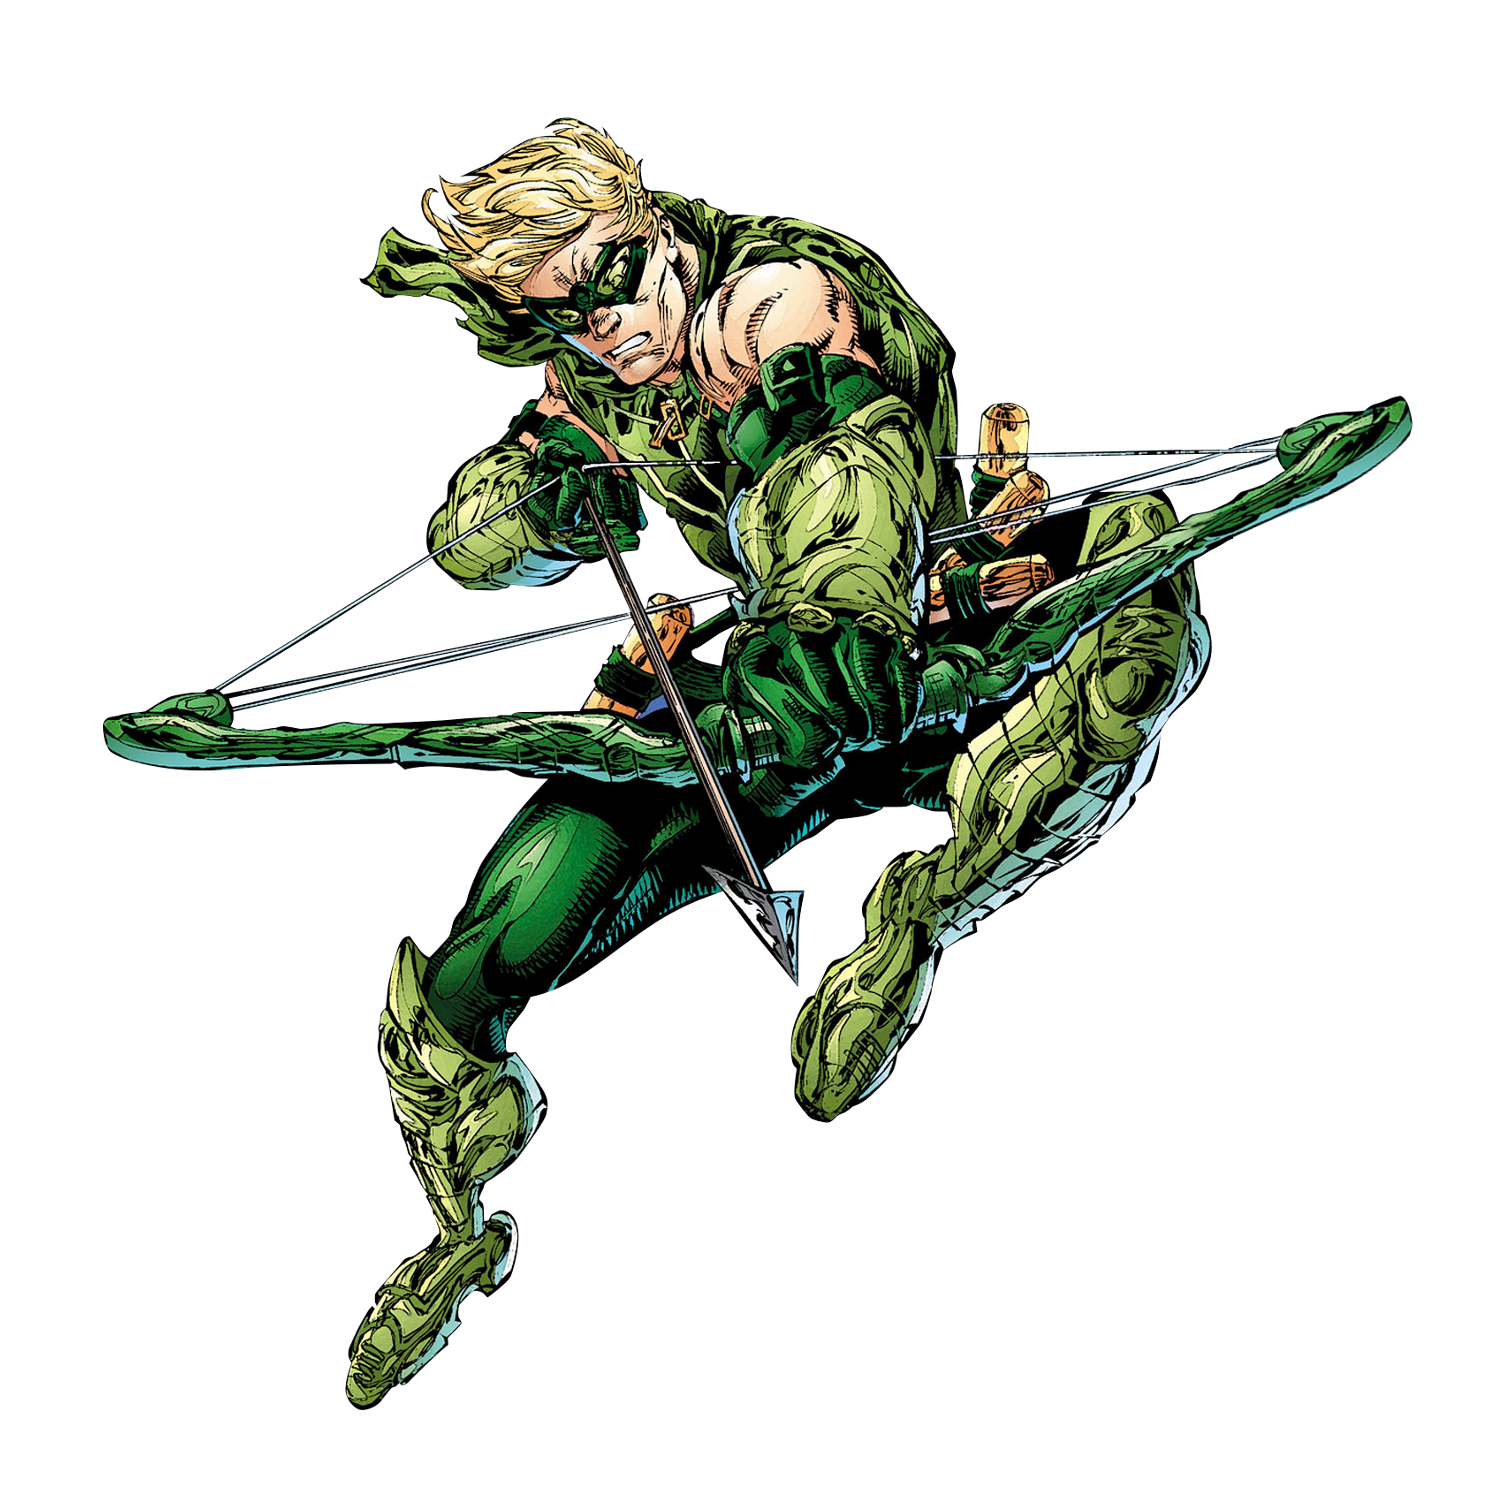 Green arrow image freeuse download 1000+ images about Green Arrow ----[》 on Pinterest | The justice ... freeuse download